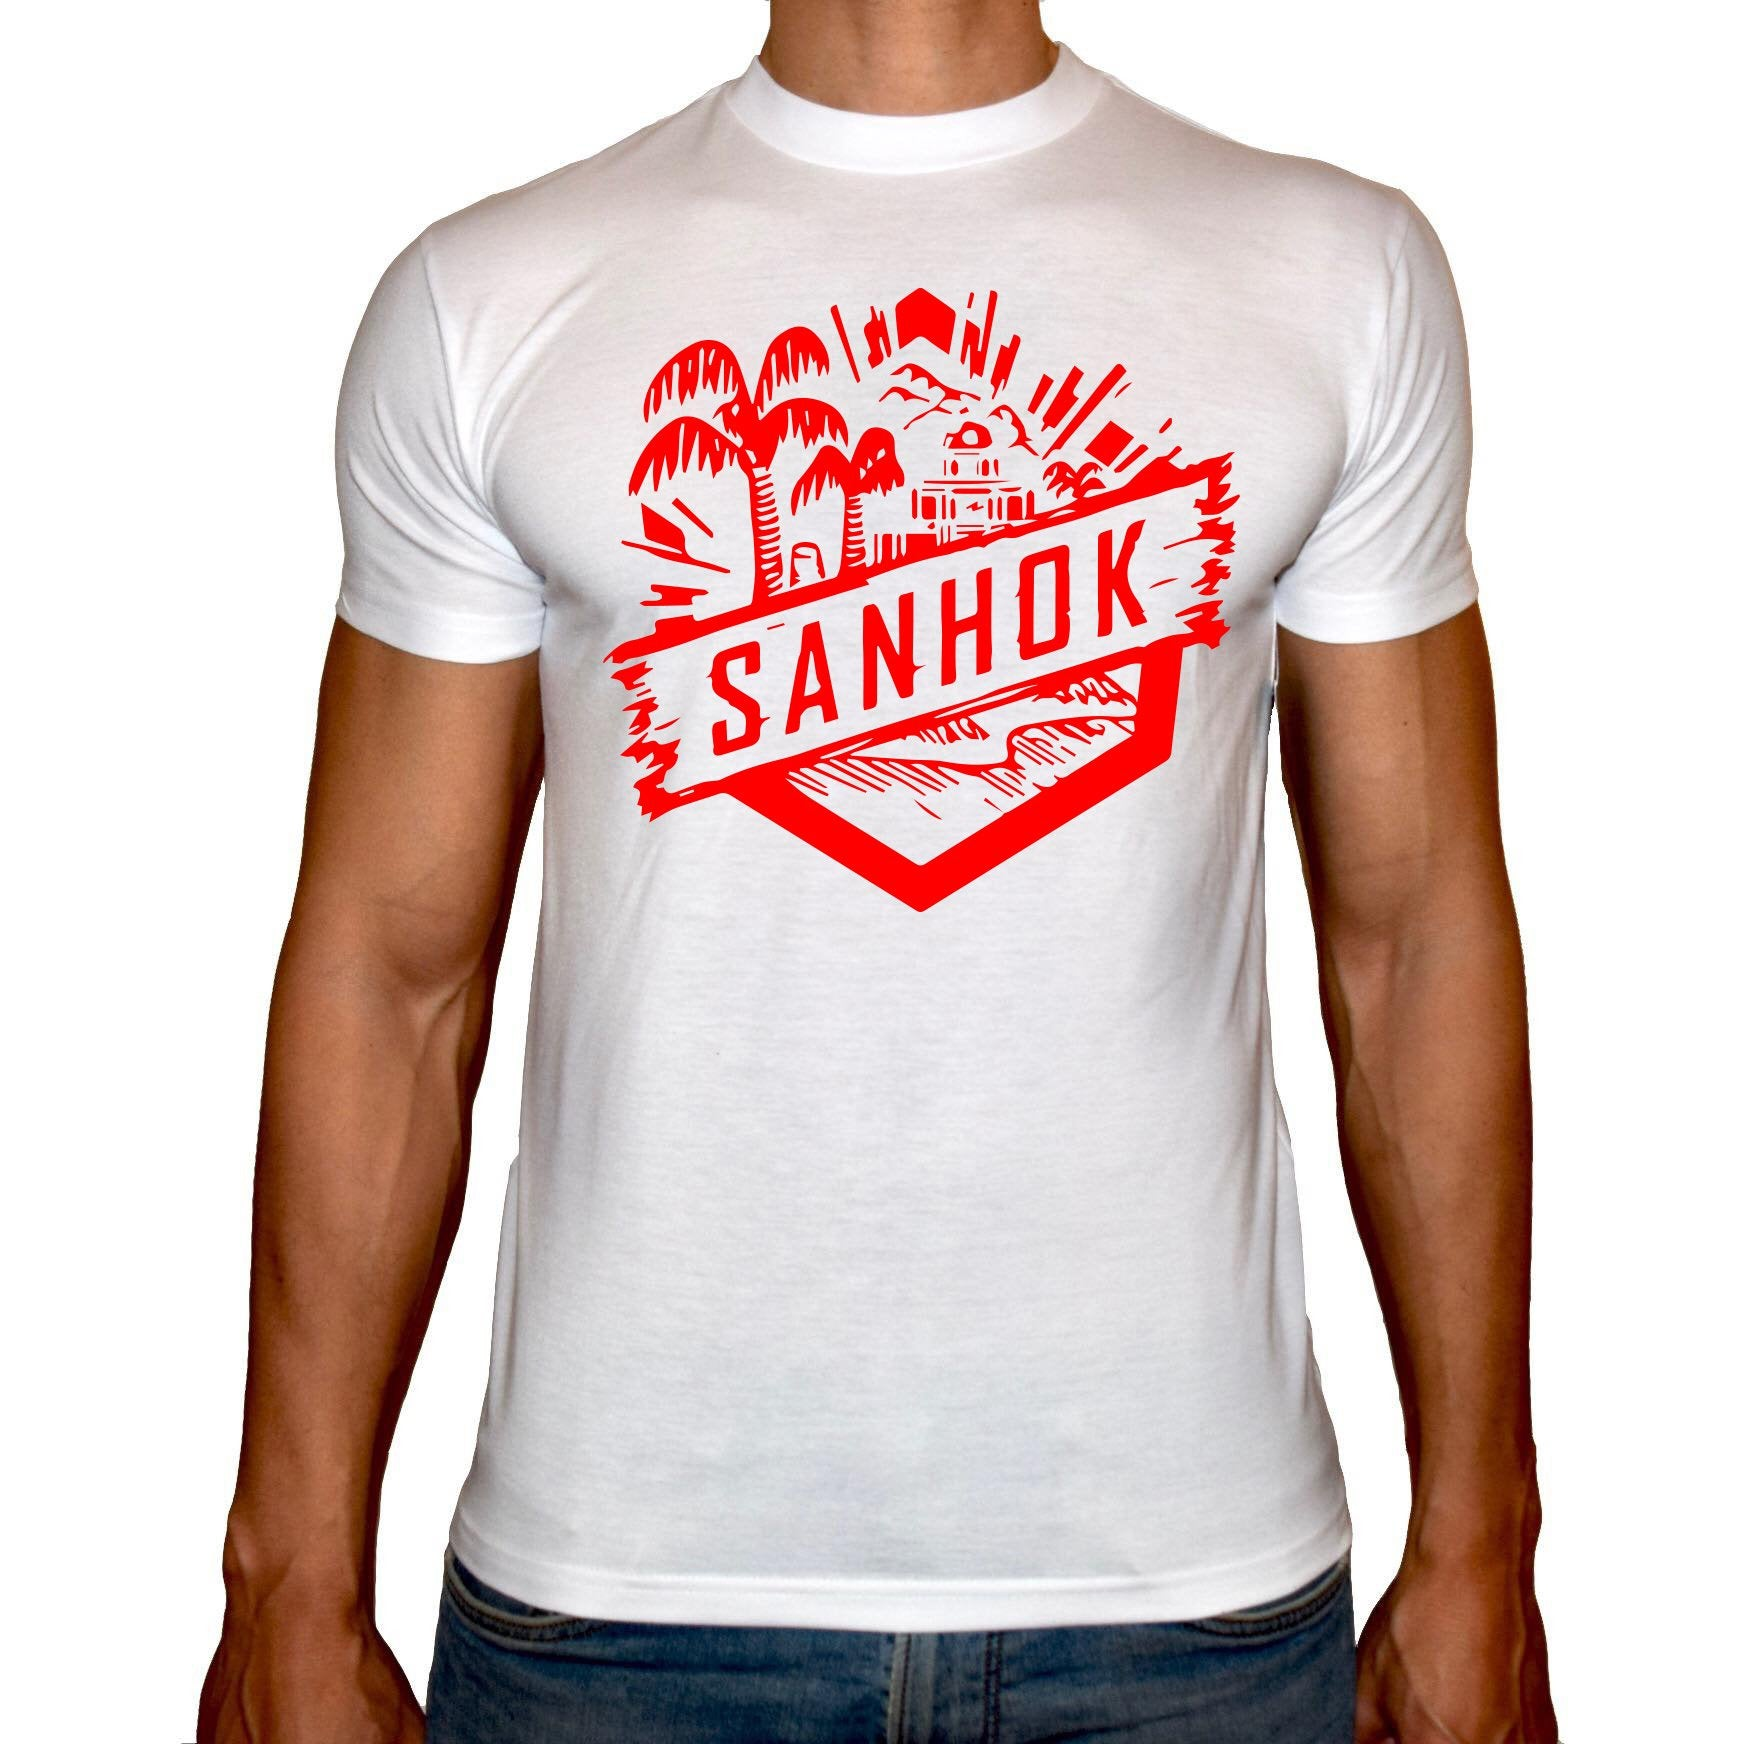 Phoenix WHITE Round Neck Printed T-Shirt Men (SANHOK)